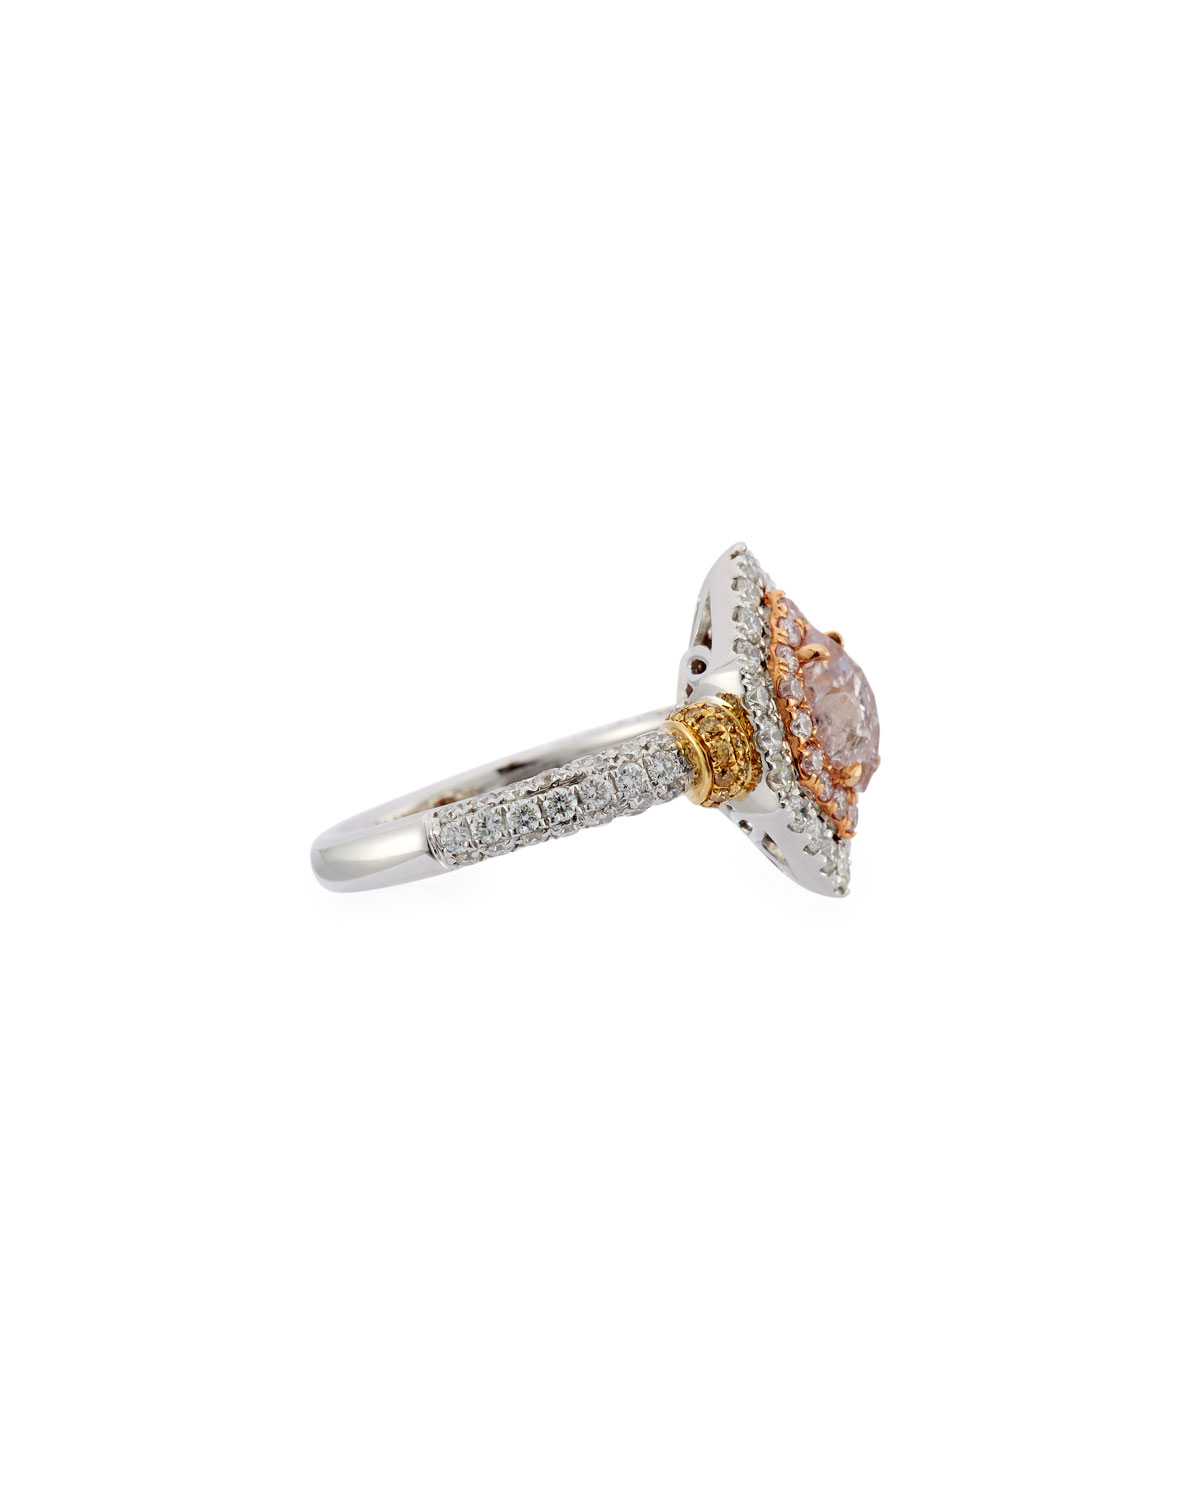 Alexander Laut Fancy-Cut Pink Diamond Ring in 18K Gold Q2BEL